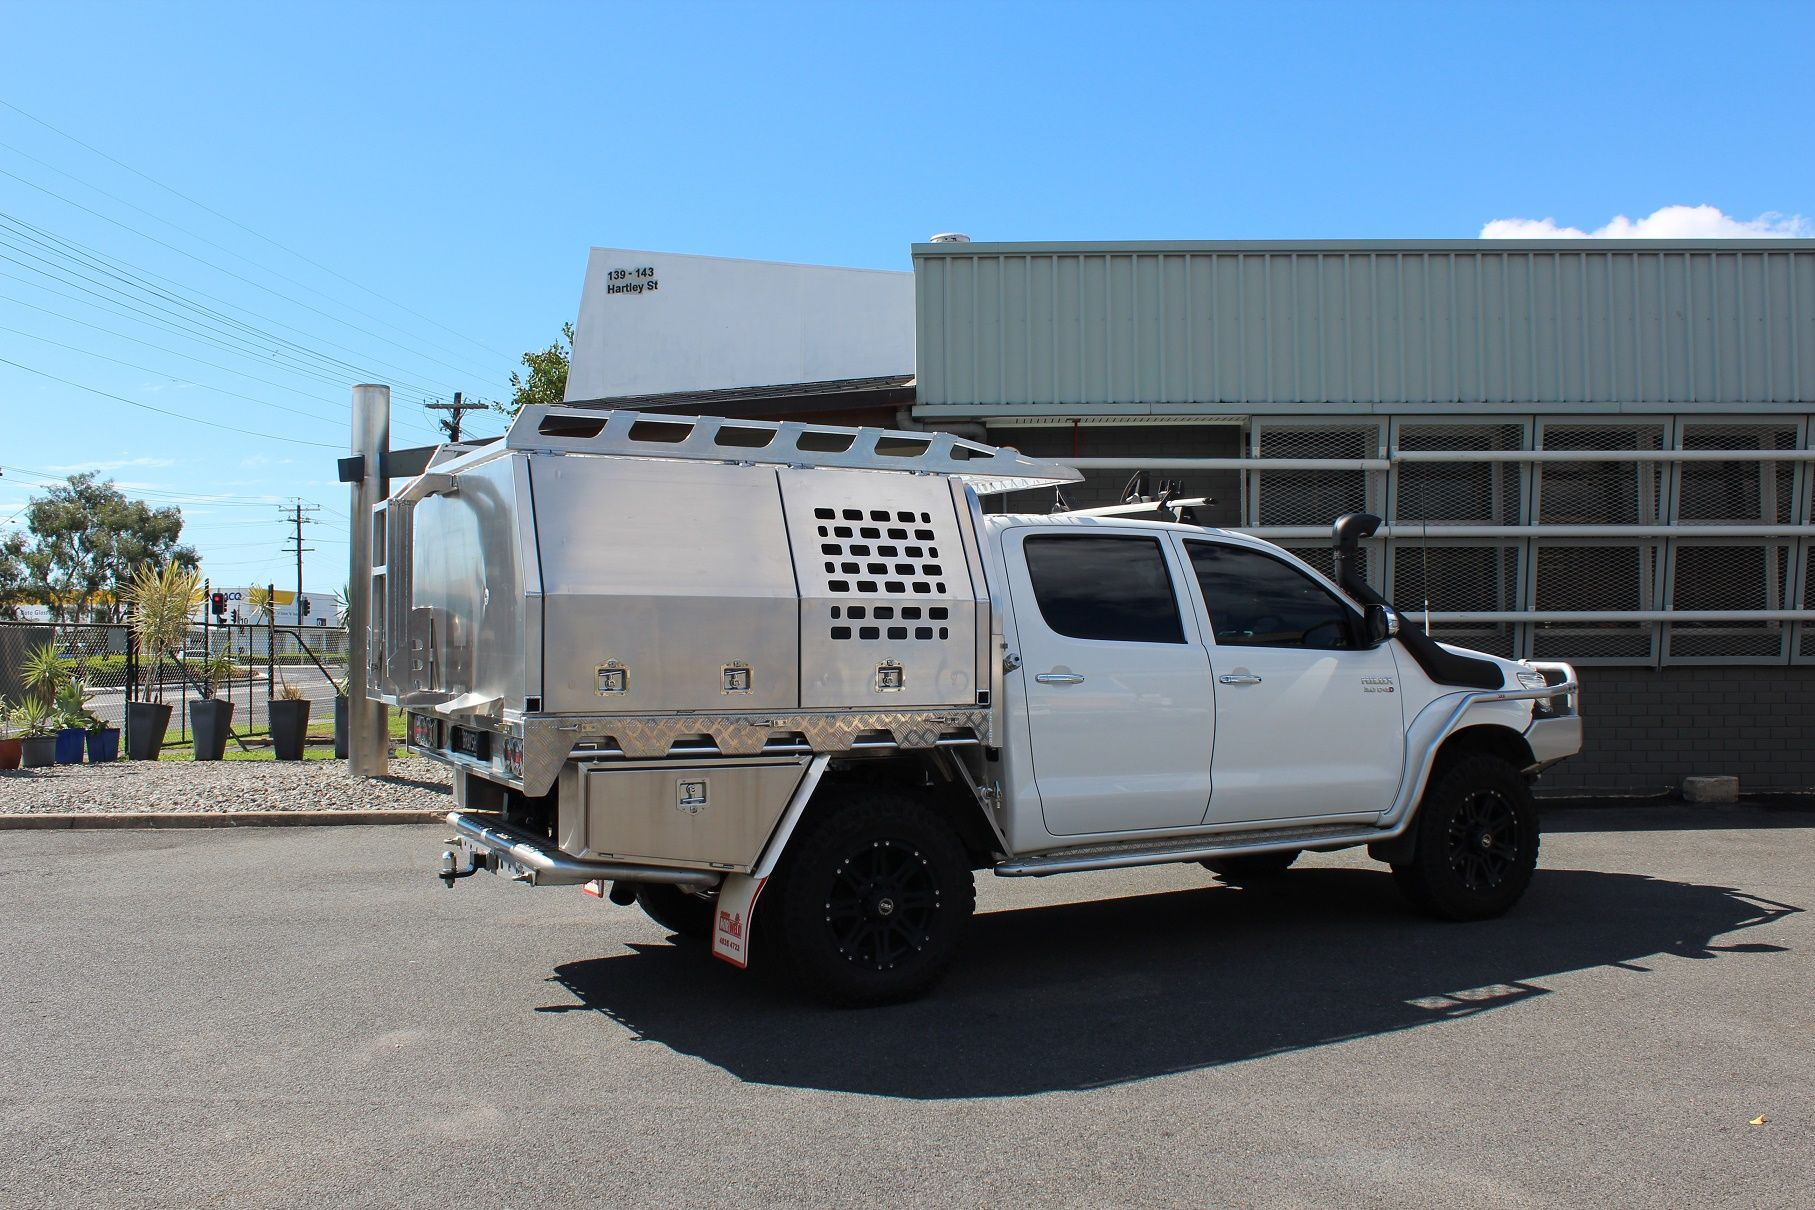 Toyota Hilux Aluminium Canopy & Toyota Hilux Aluminium Canopy | Slide on campers | Pinterest ...